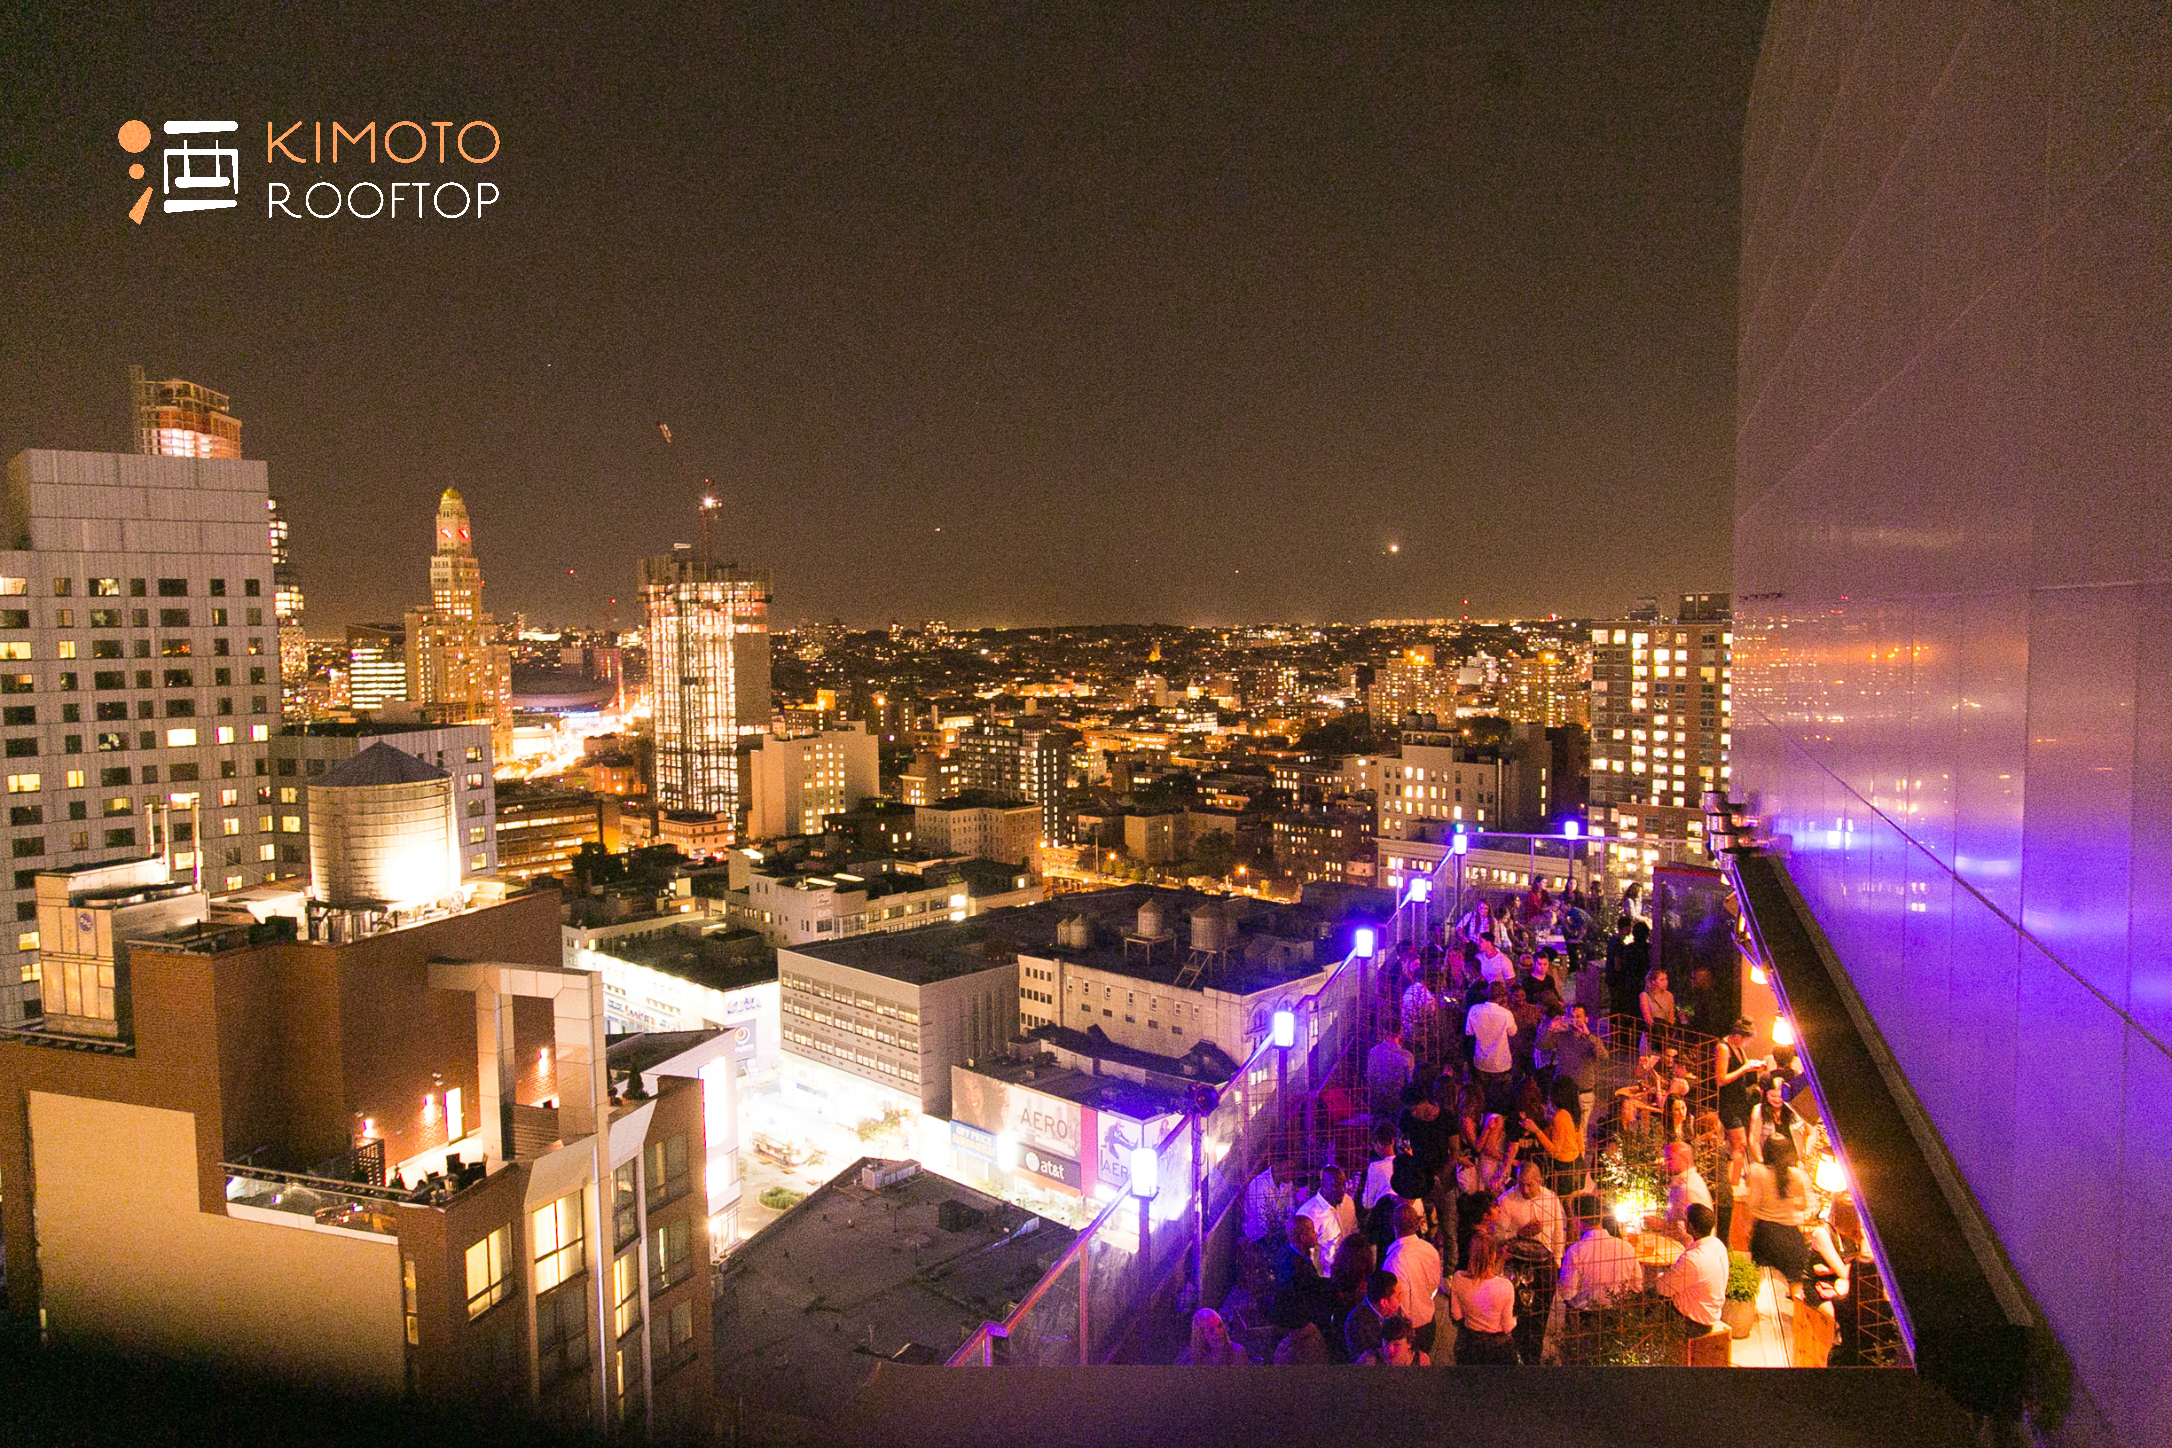 Kimoto Rooftop event space in New York City, NYC, NY/NJ Area